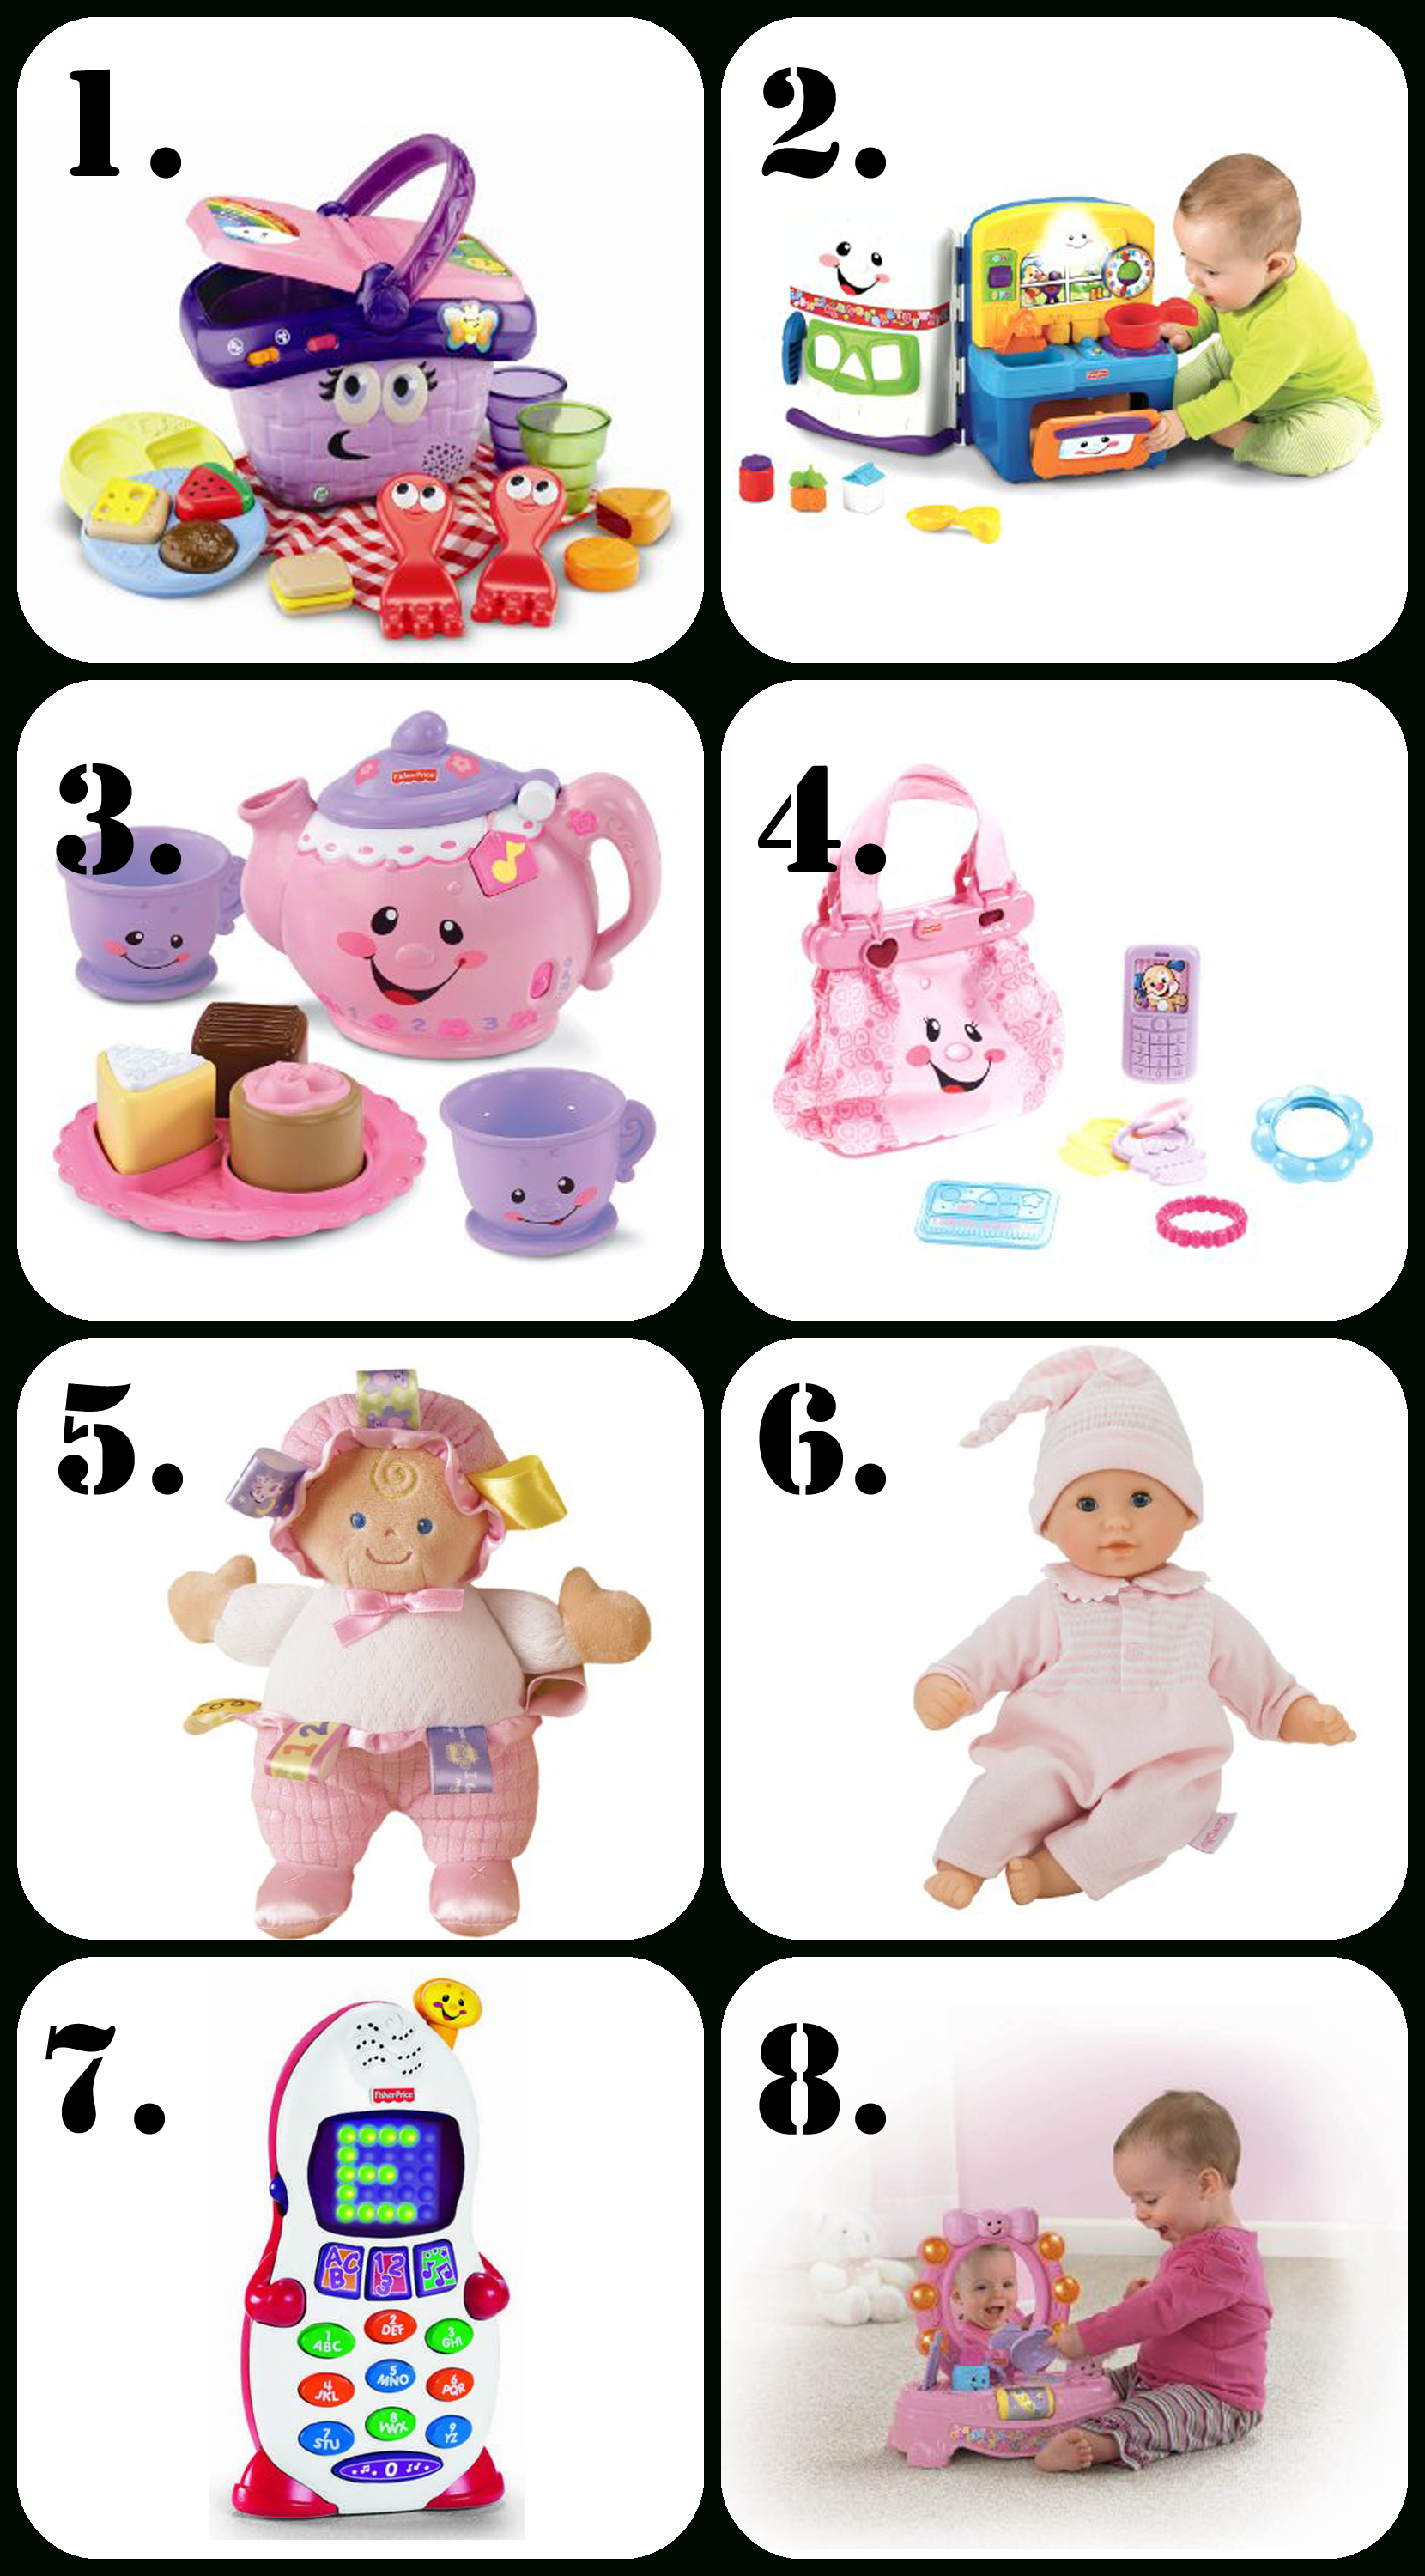 10 Lovable Gift Ideas For A 1 Year Old Girl best gifts for a 1 year old girl e280a2 the pinning mama 2 2020